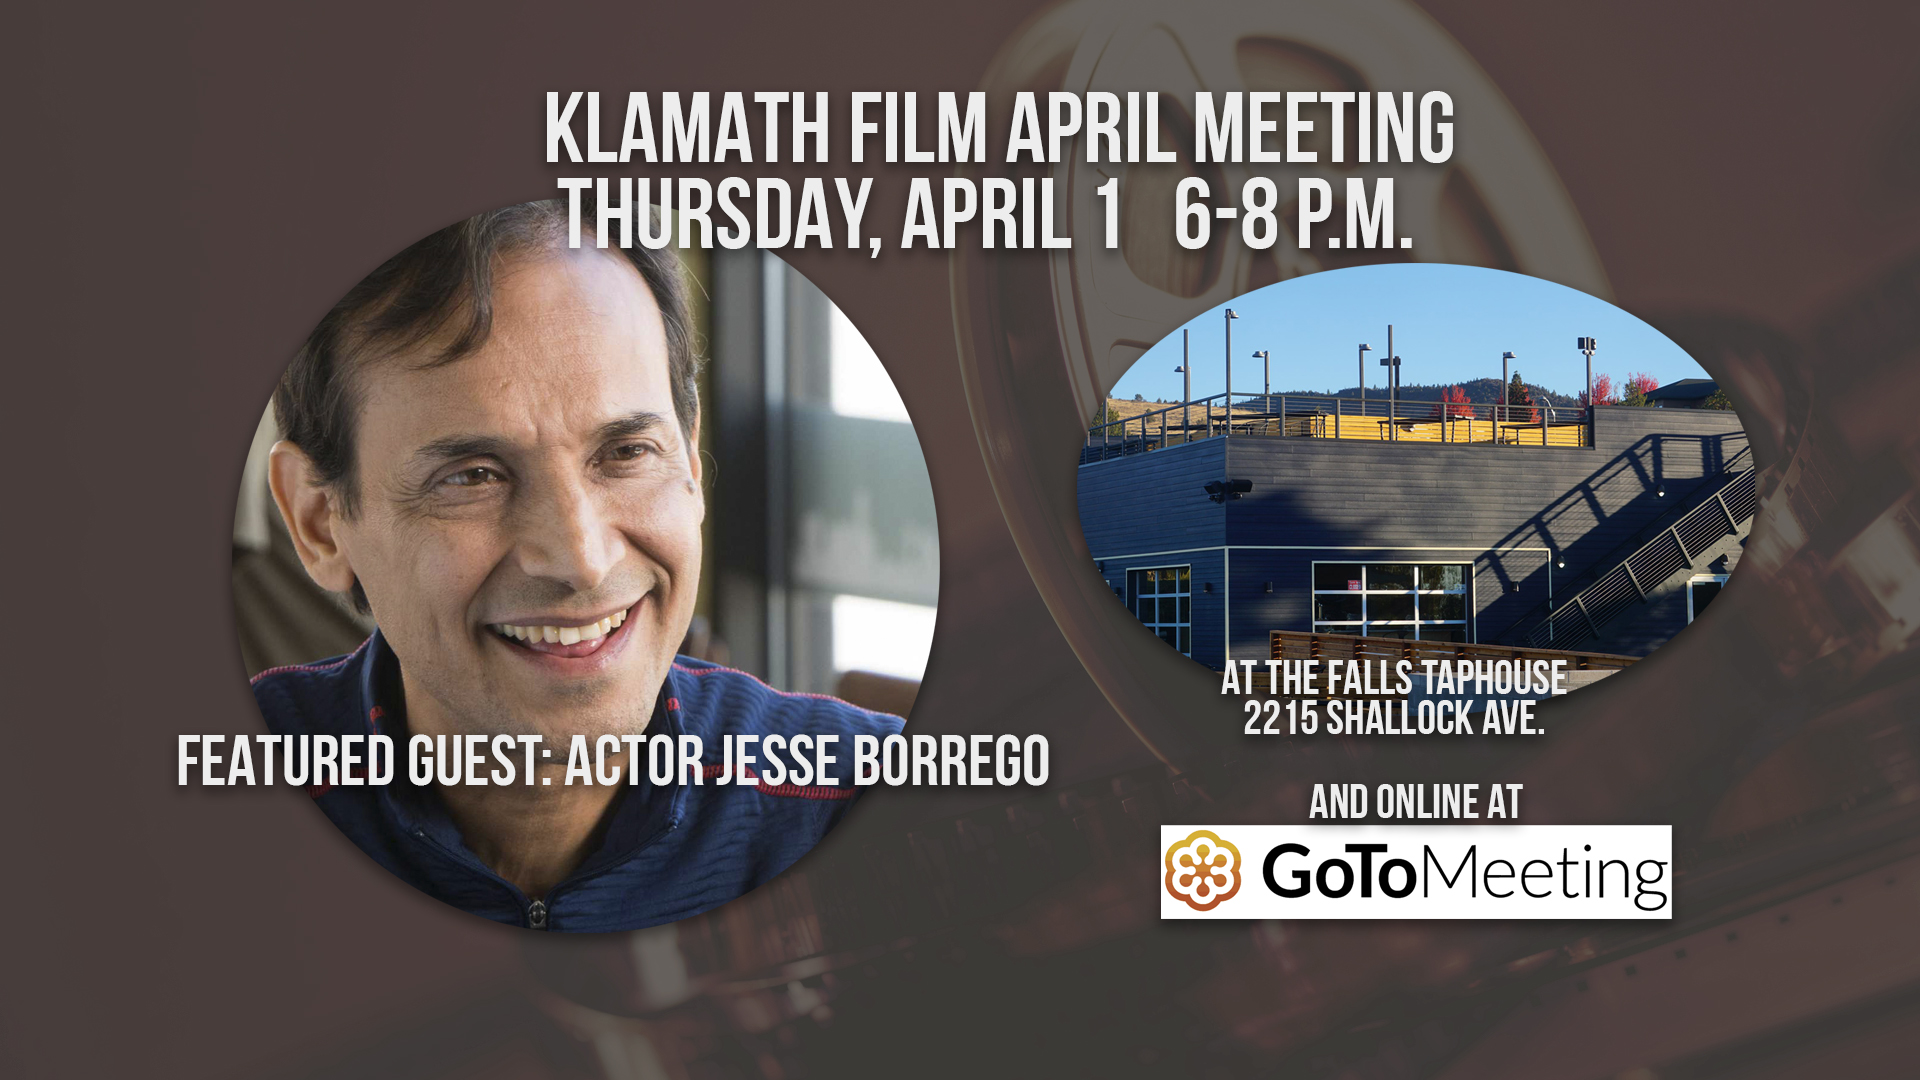 April member meeting at the Falls Taphouse features talk with iconic actor Jesse Borrego